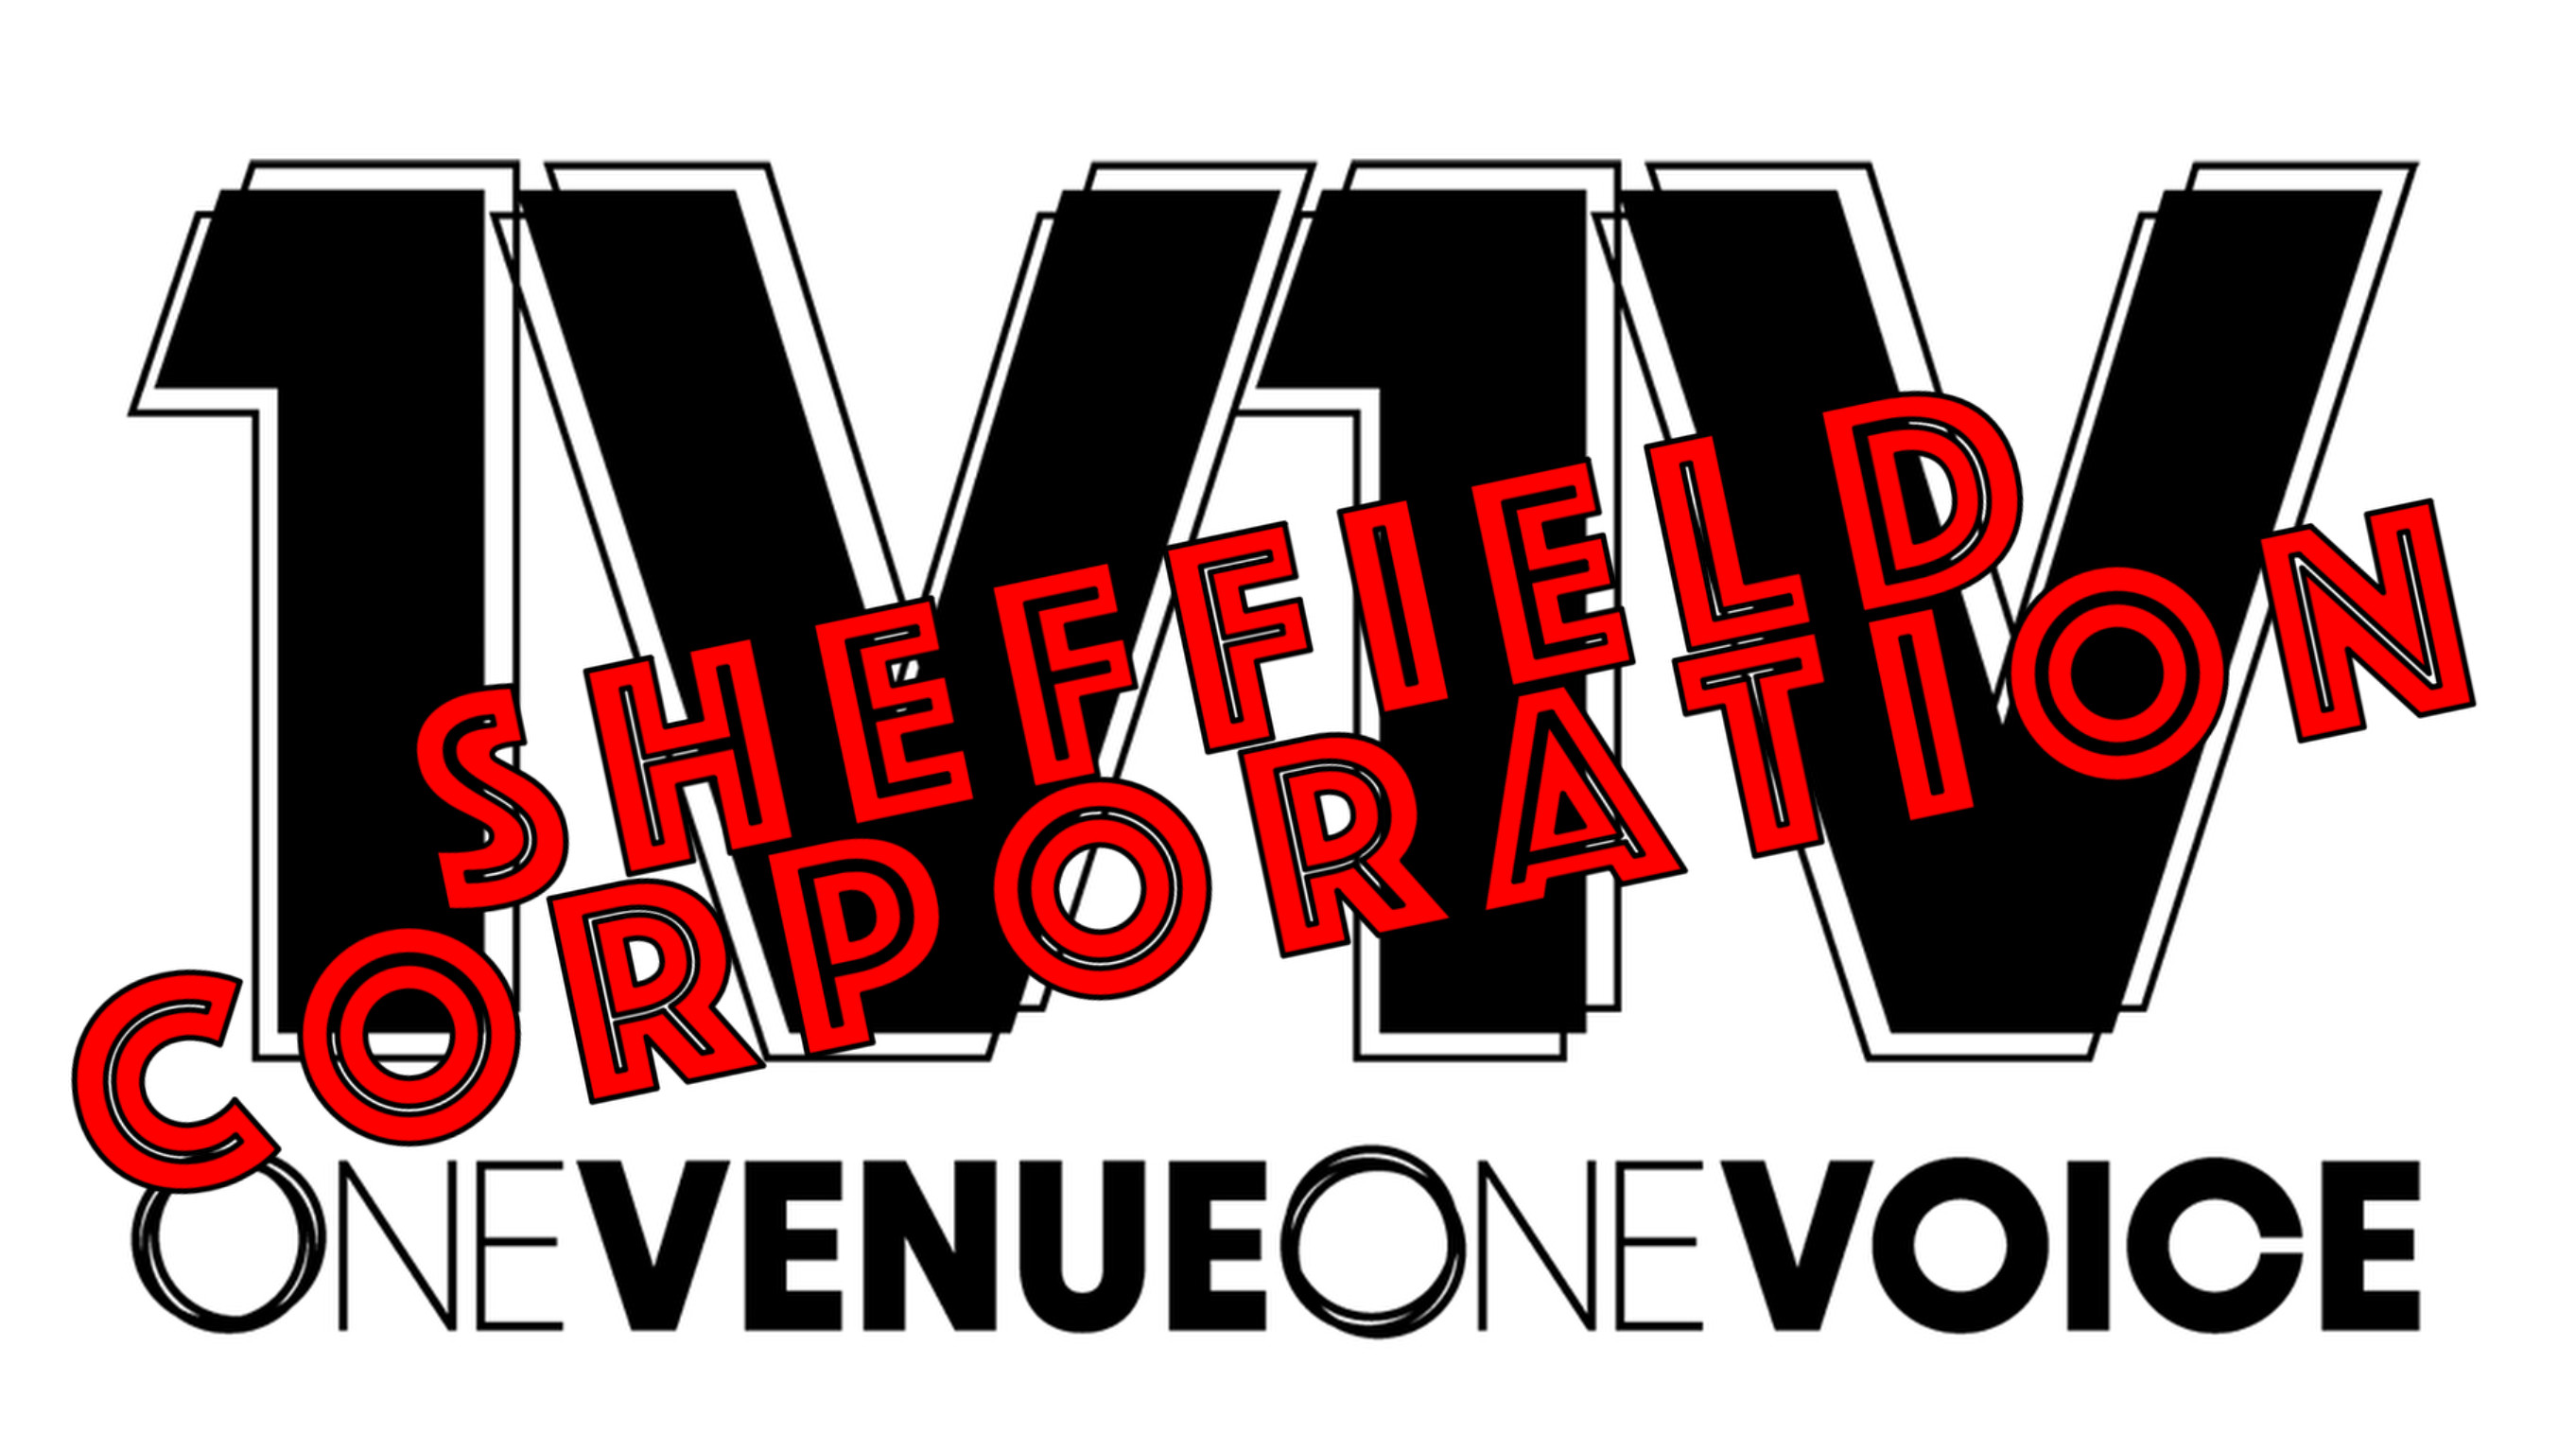 Corporation Sheffield